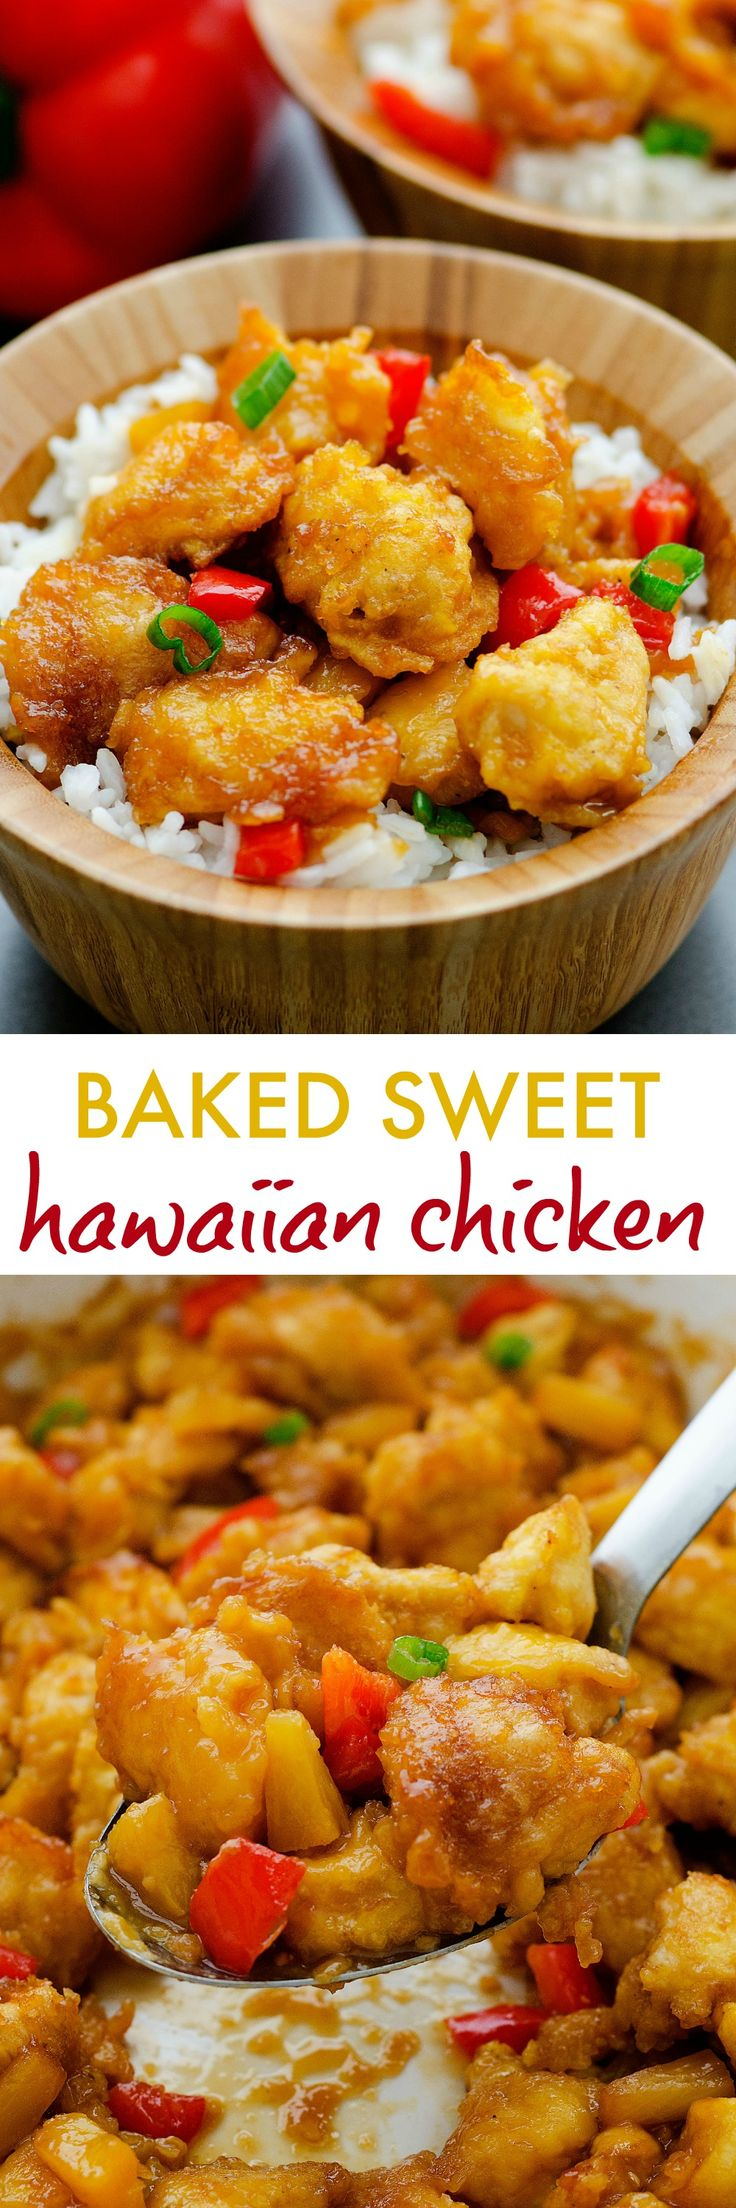 golden chicken coated in a sweet and tangy sauce with pineapples and bell peppers!